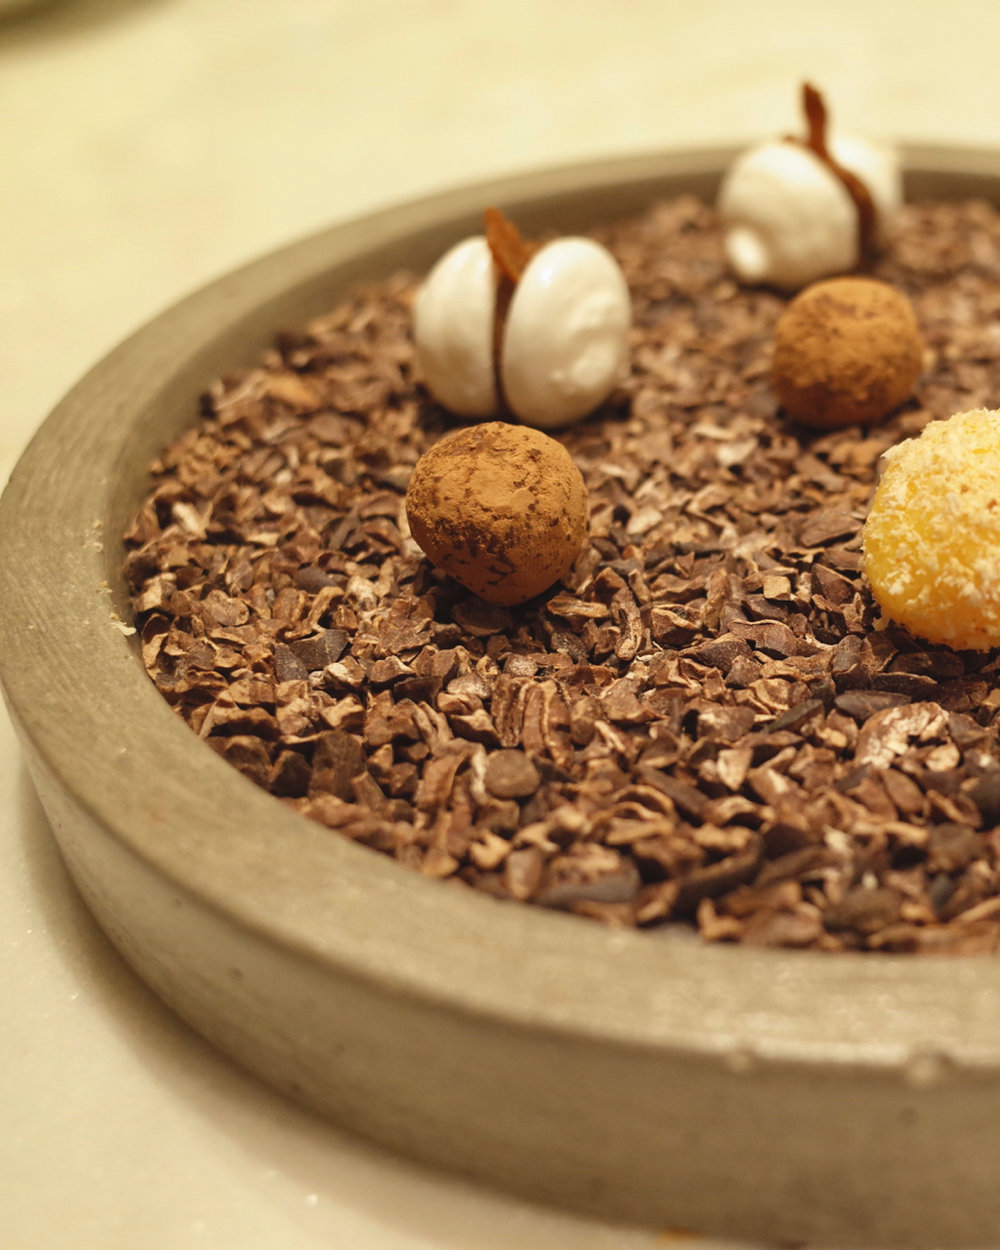 - Bite size chocolate truffles filled with pili nut butter, home made yema and micro meringues with a miso caramel.